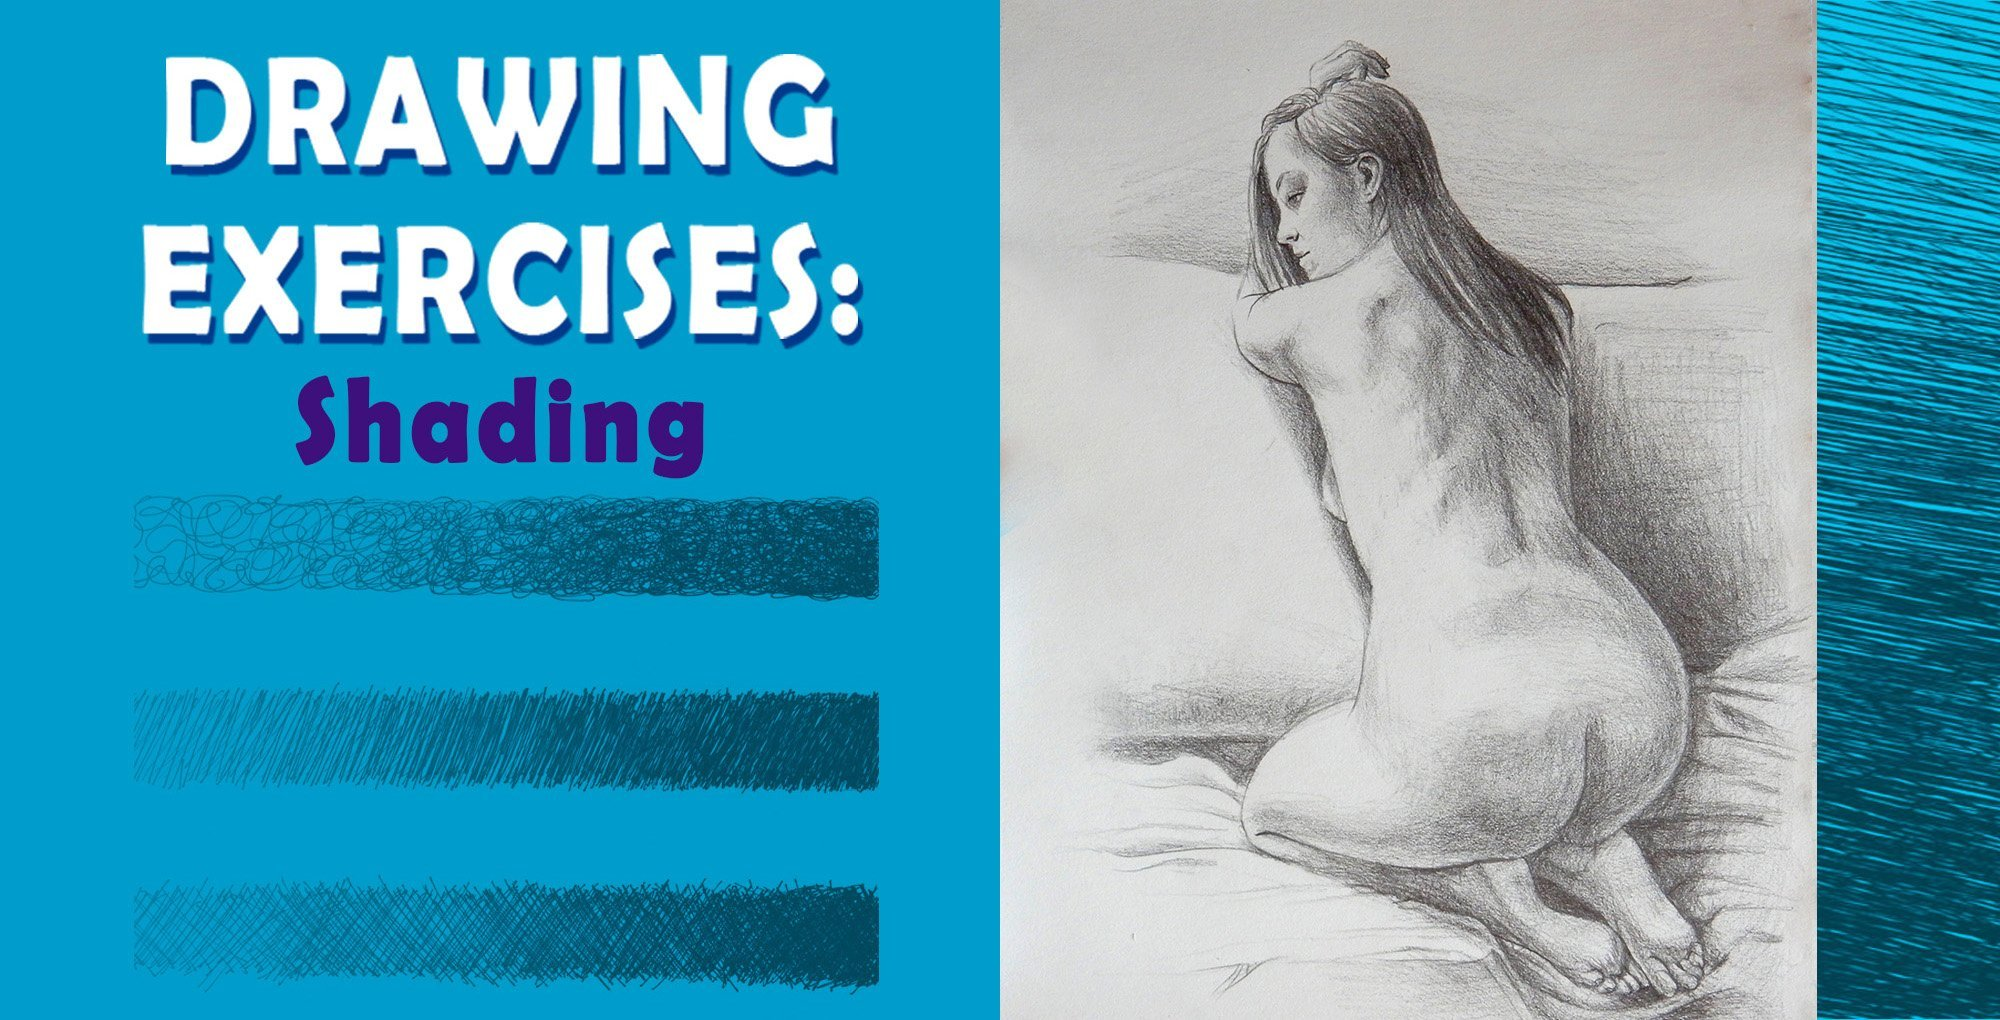 Drawing exercises: shading objects and figure drawing